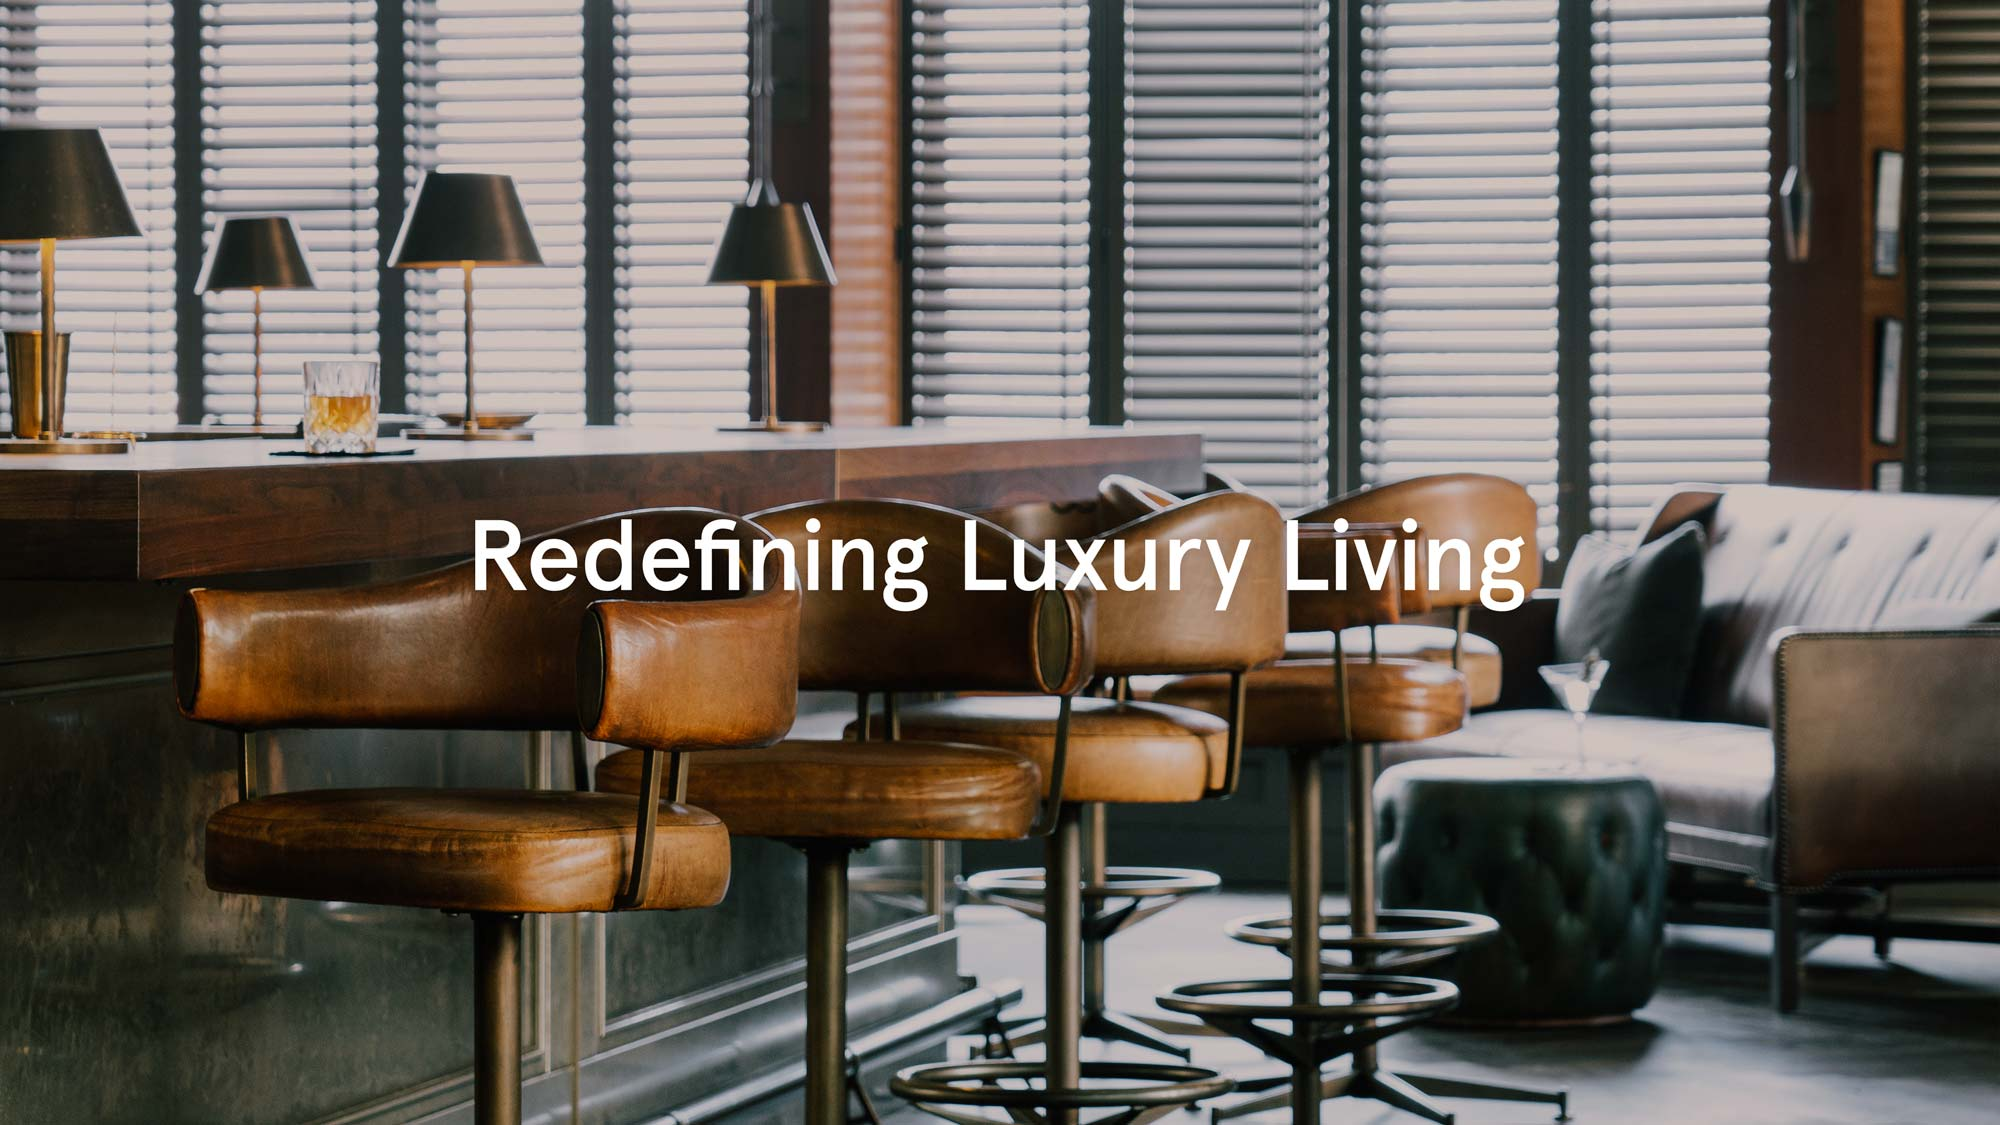 Redefining luxury living interior shot